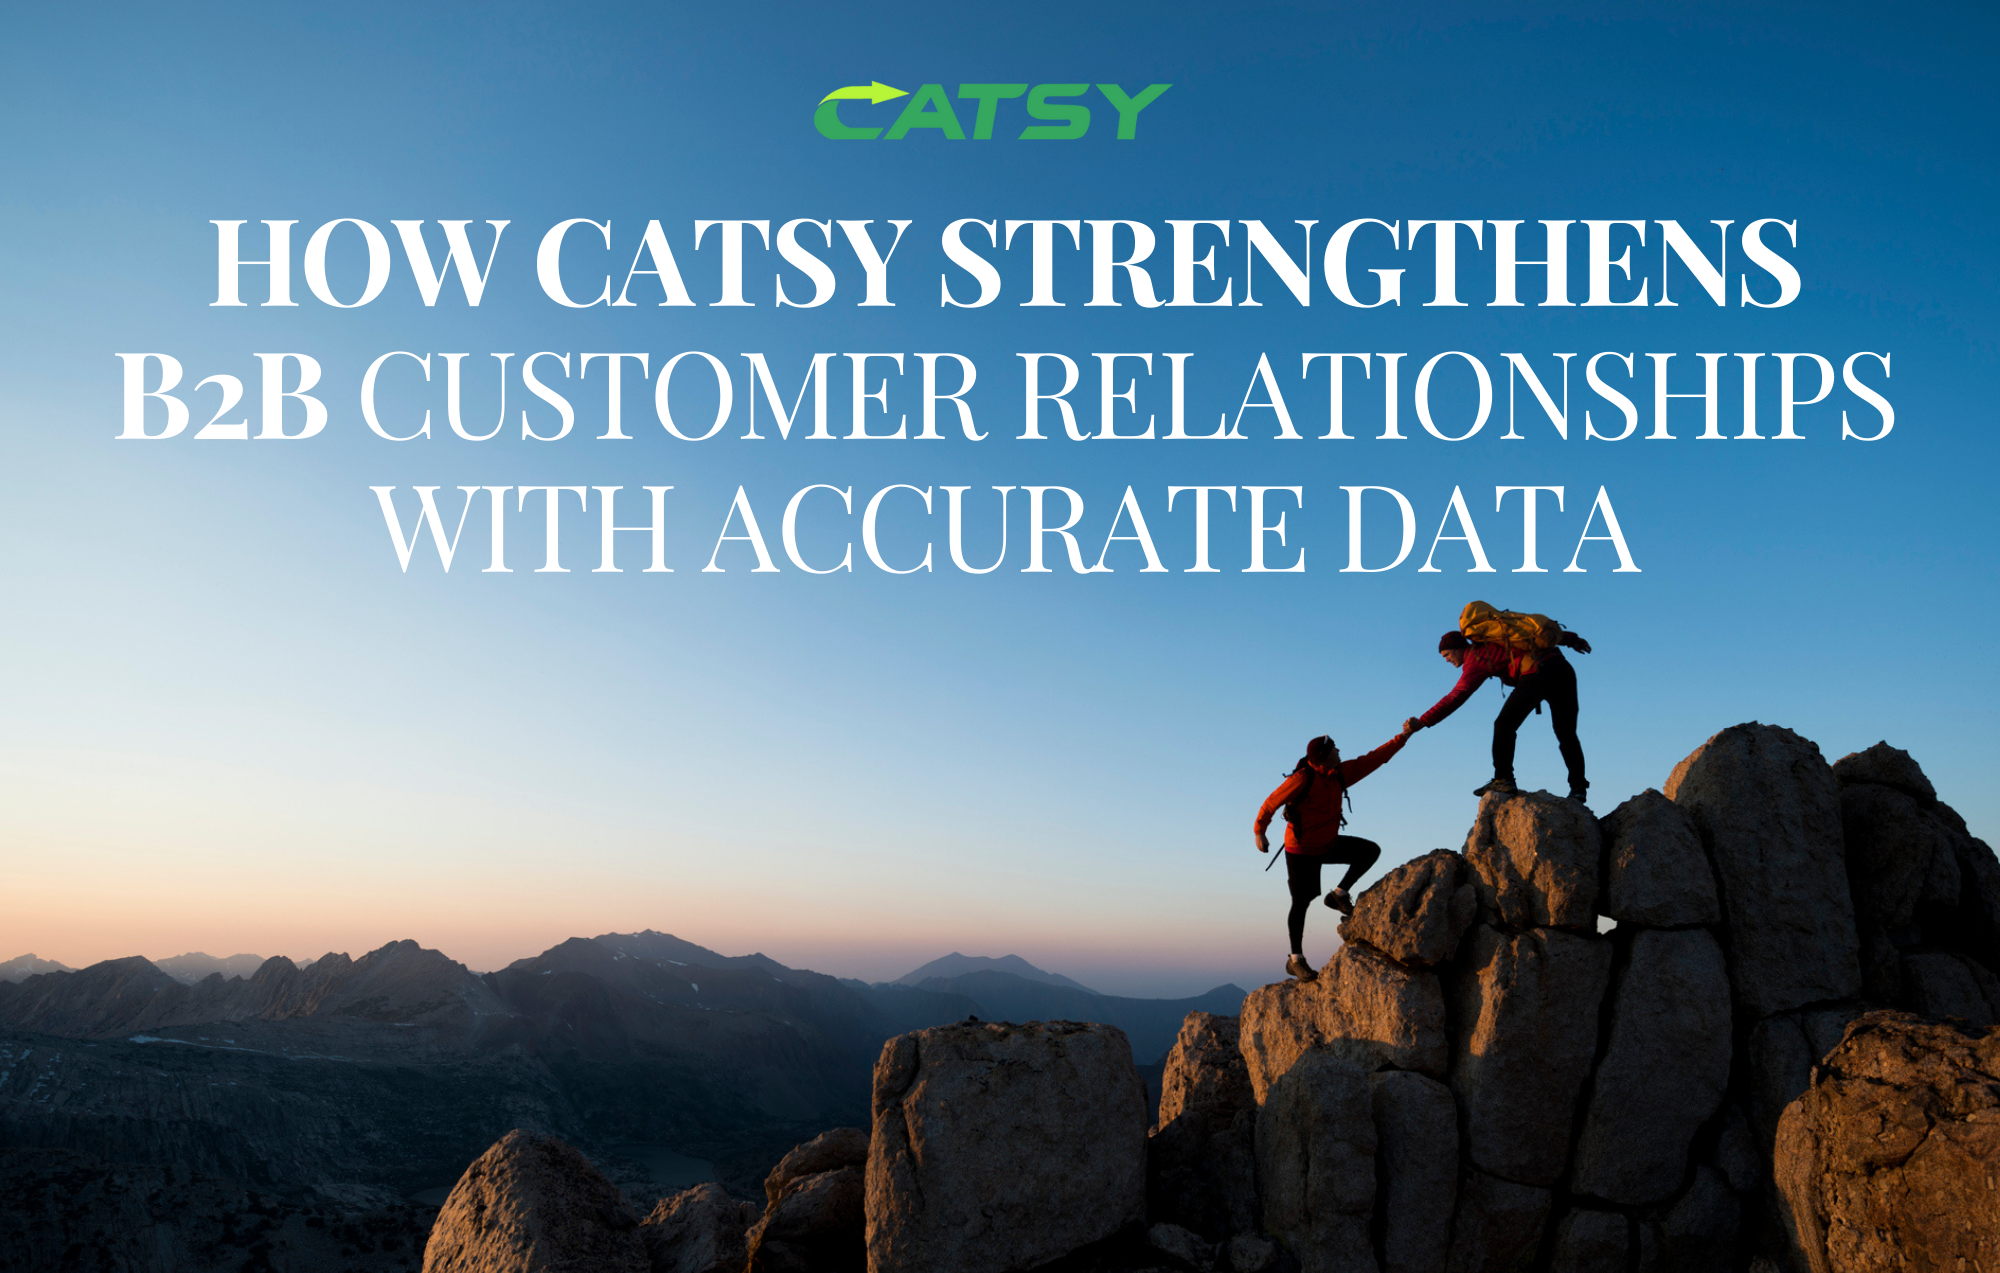 How Catsy Strengthens B2B Customer Relationships with Accurate Data